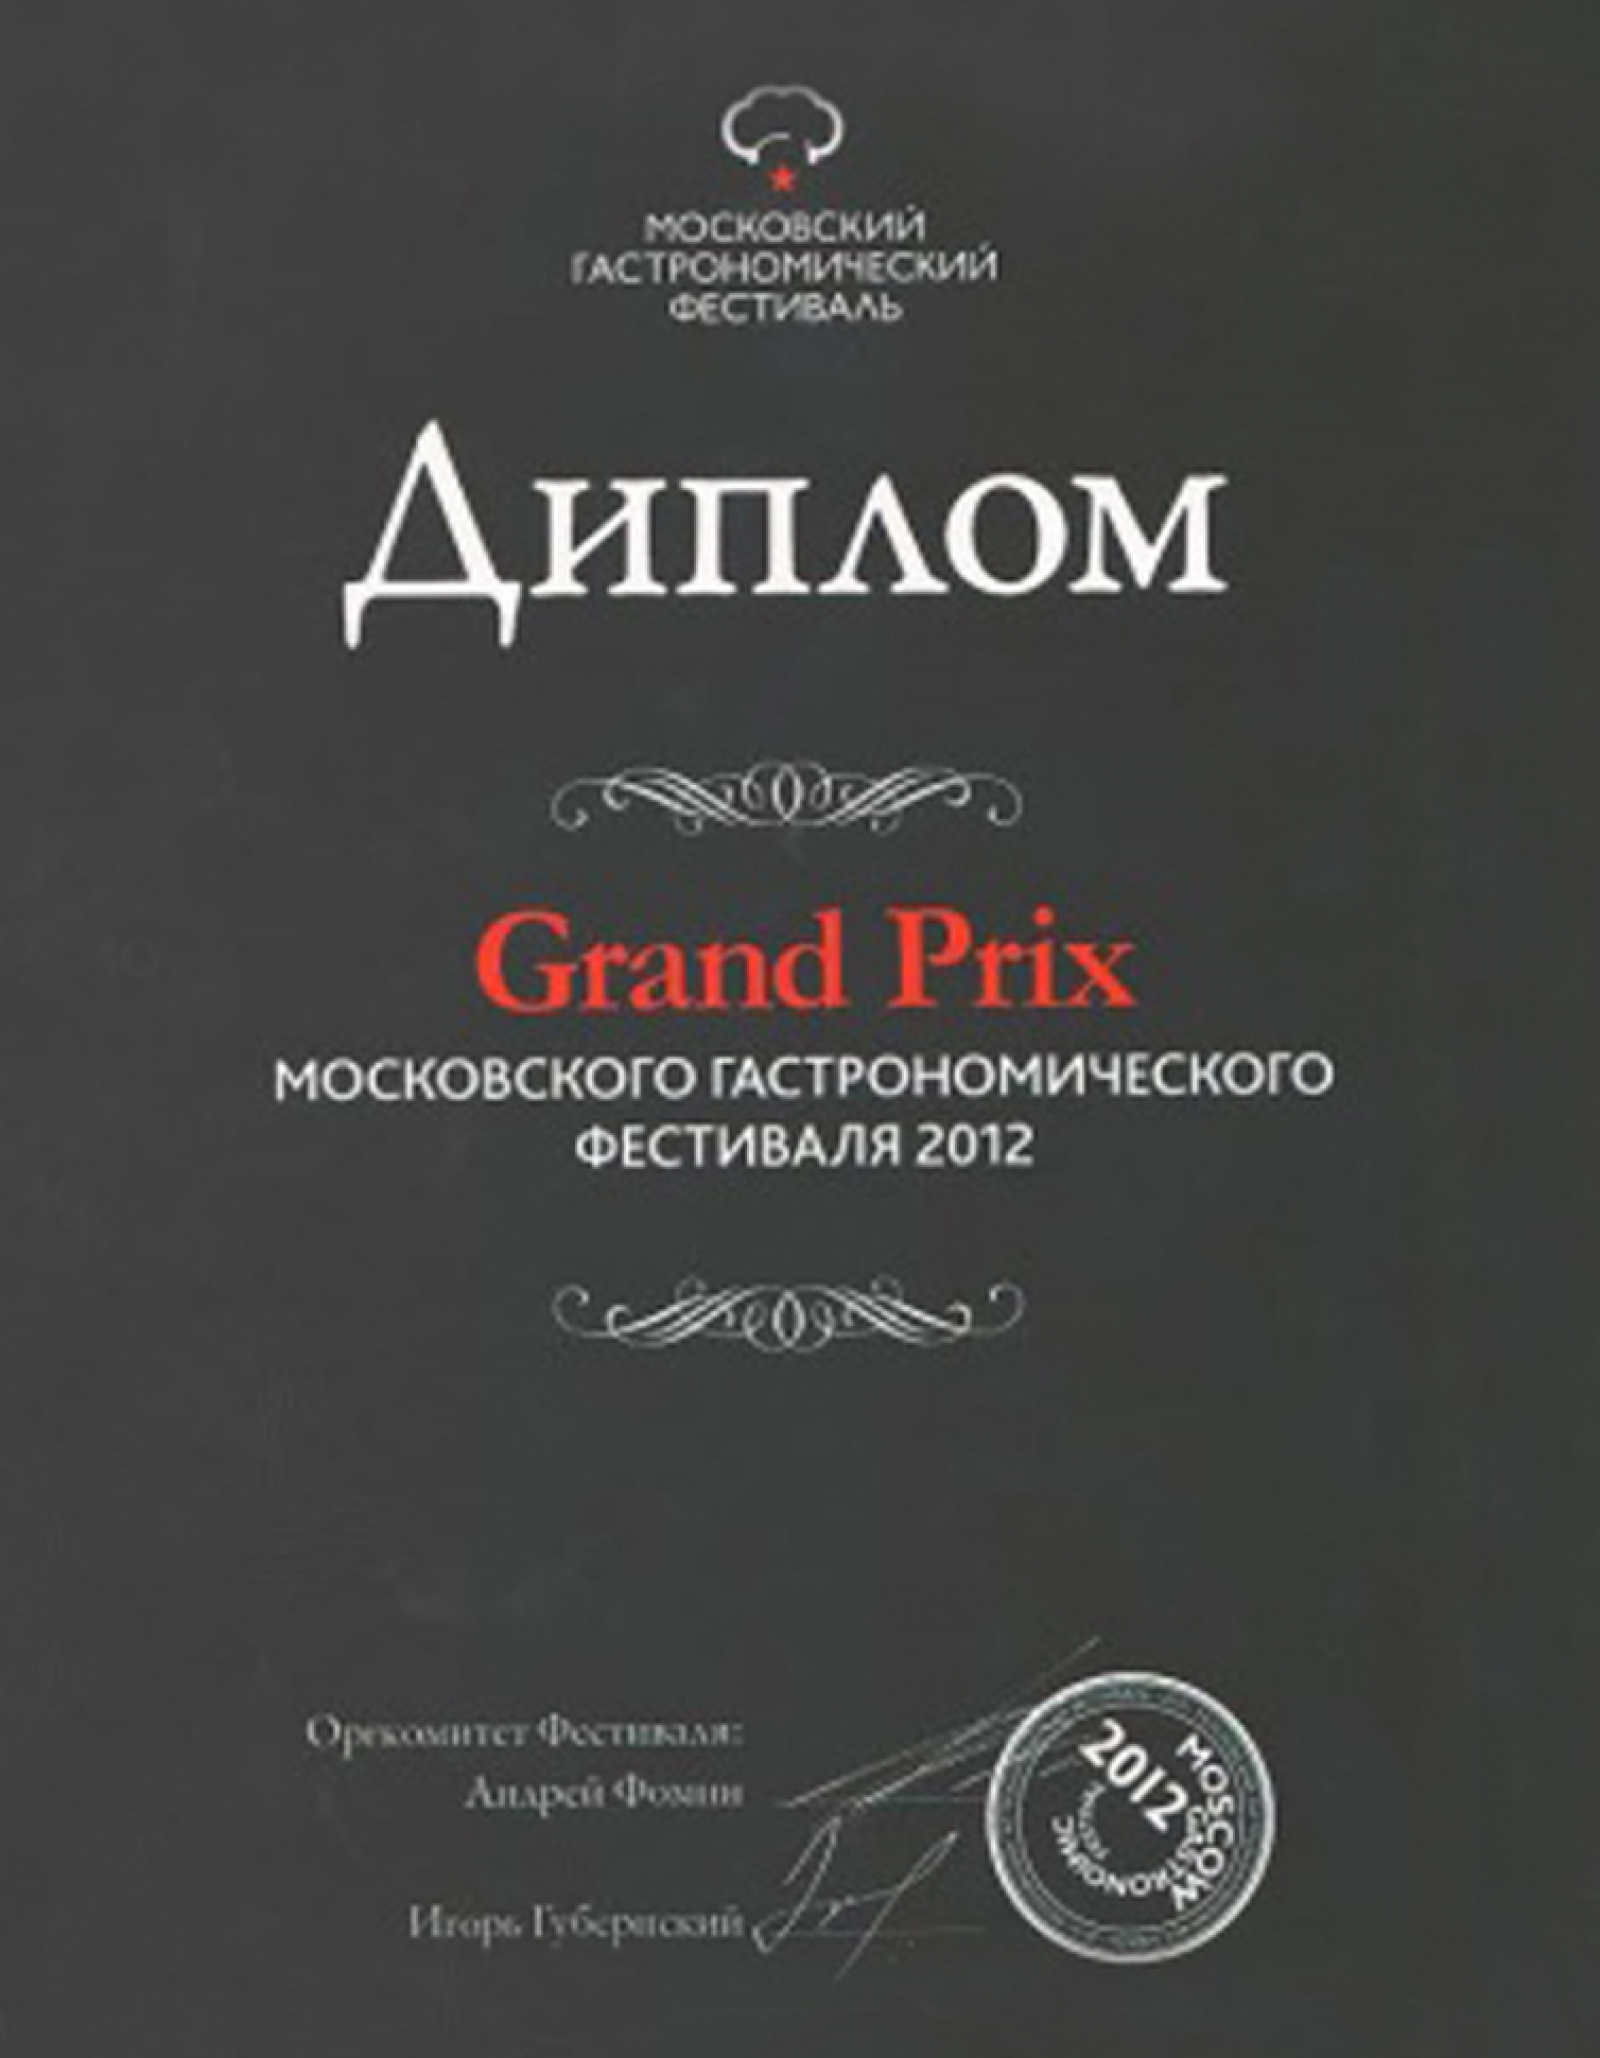 GRAND PRIX AT THE MOSCOW BALL DESSERT FOOD FESTIVAL